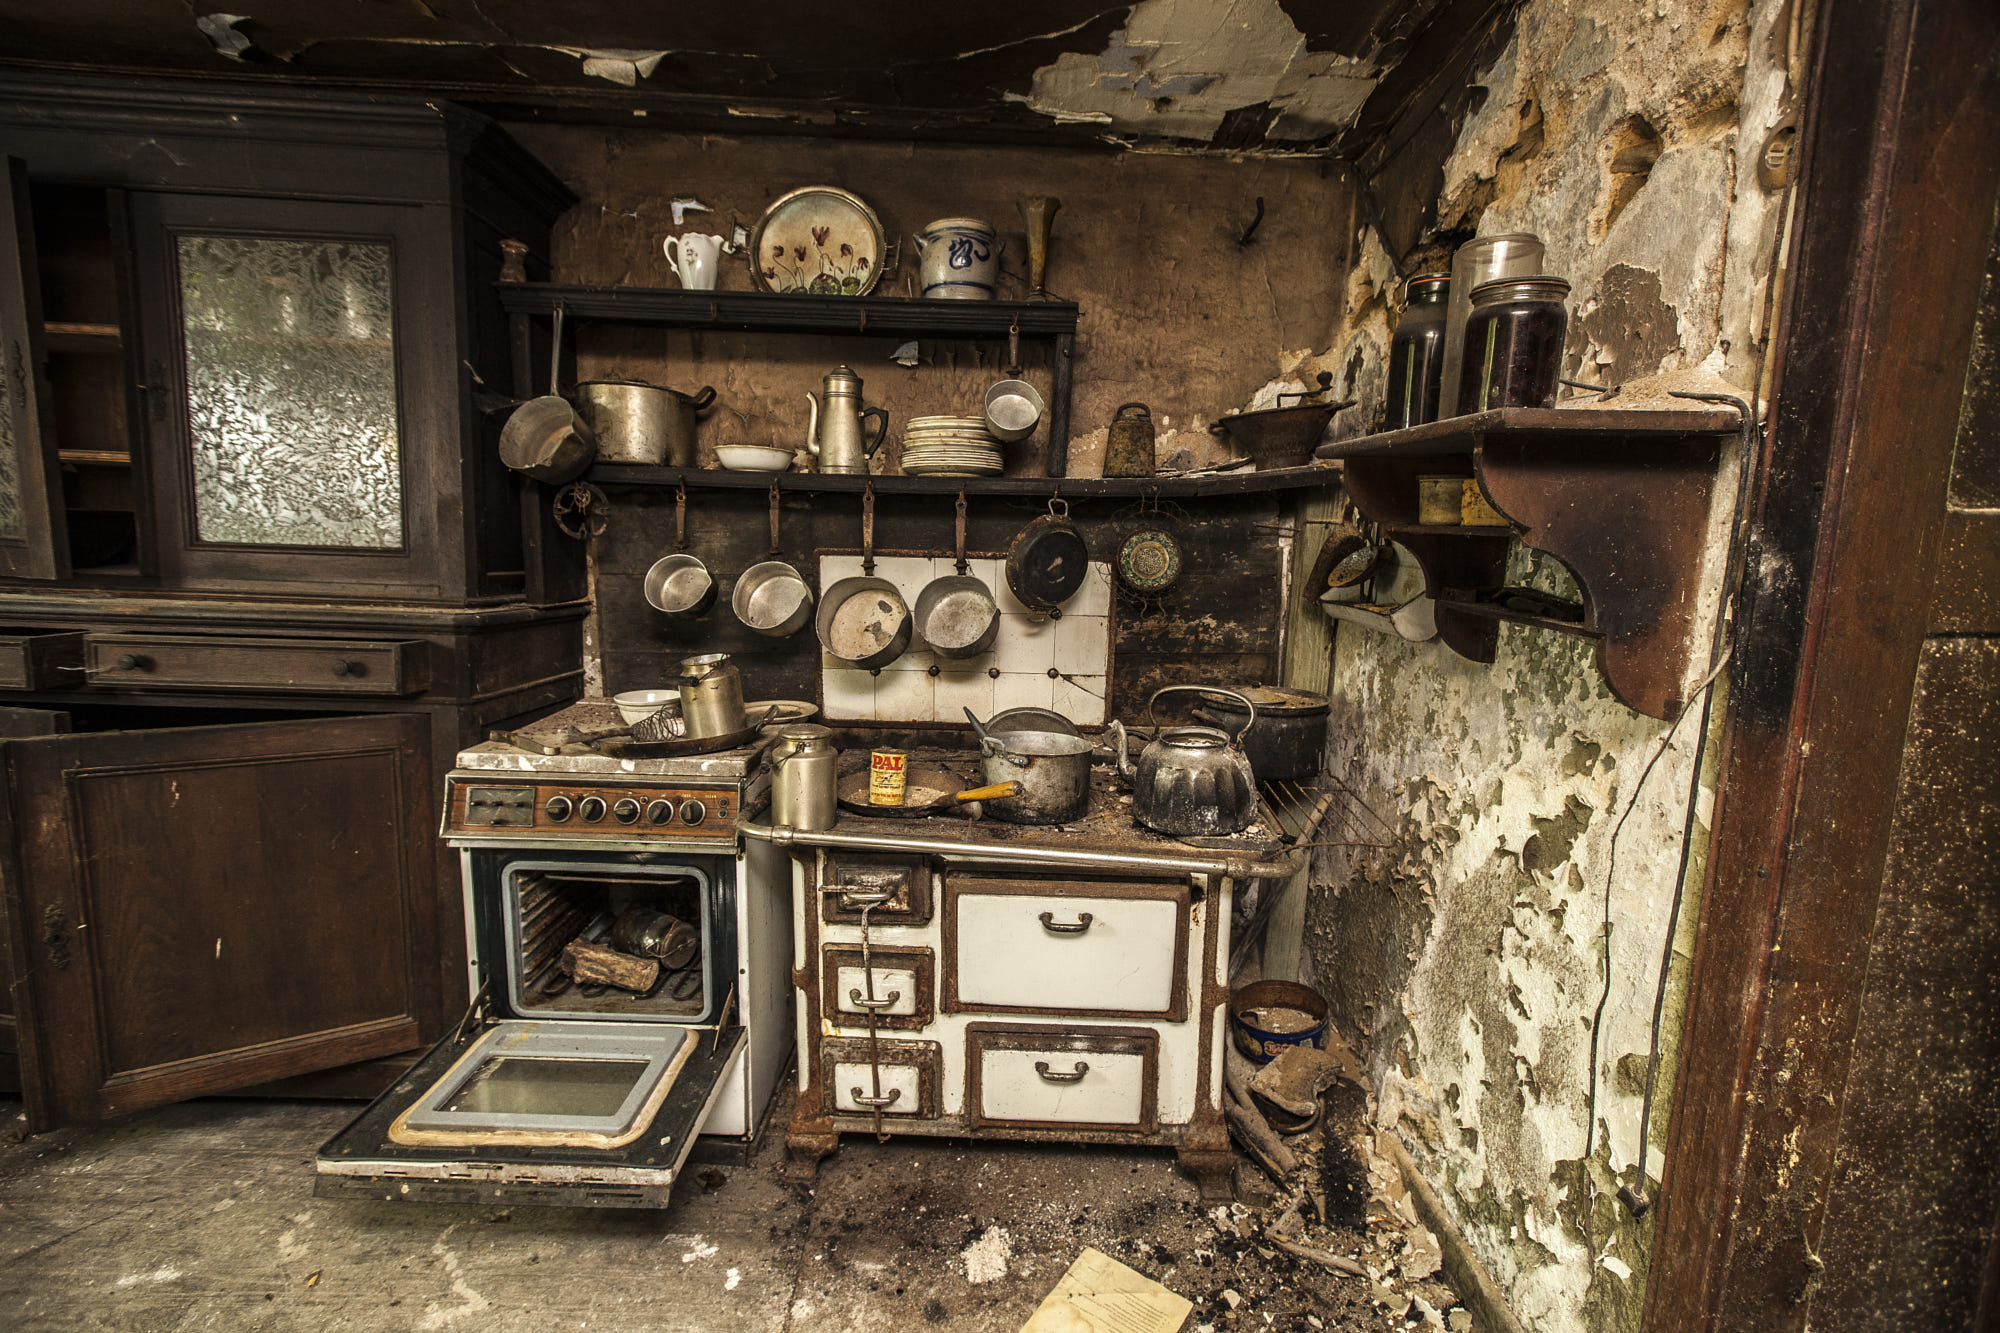 Abandoned Kitchen By Urbexclown Photo 11117903 500px